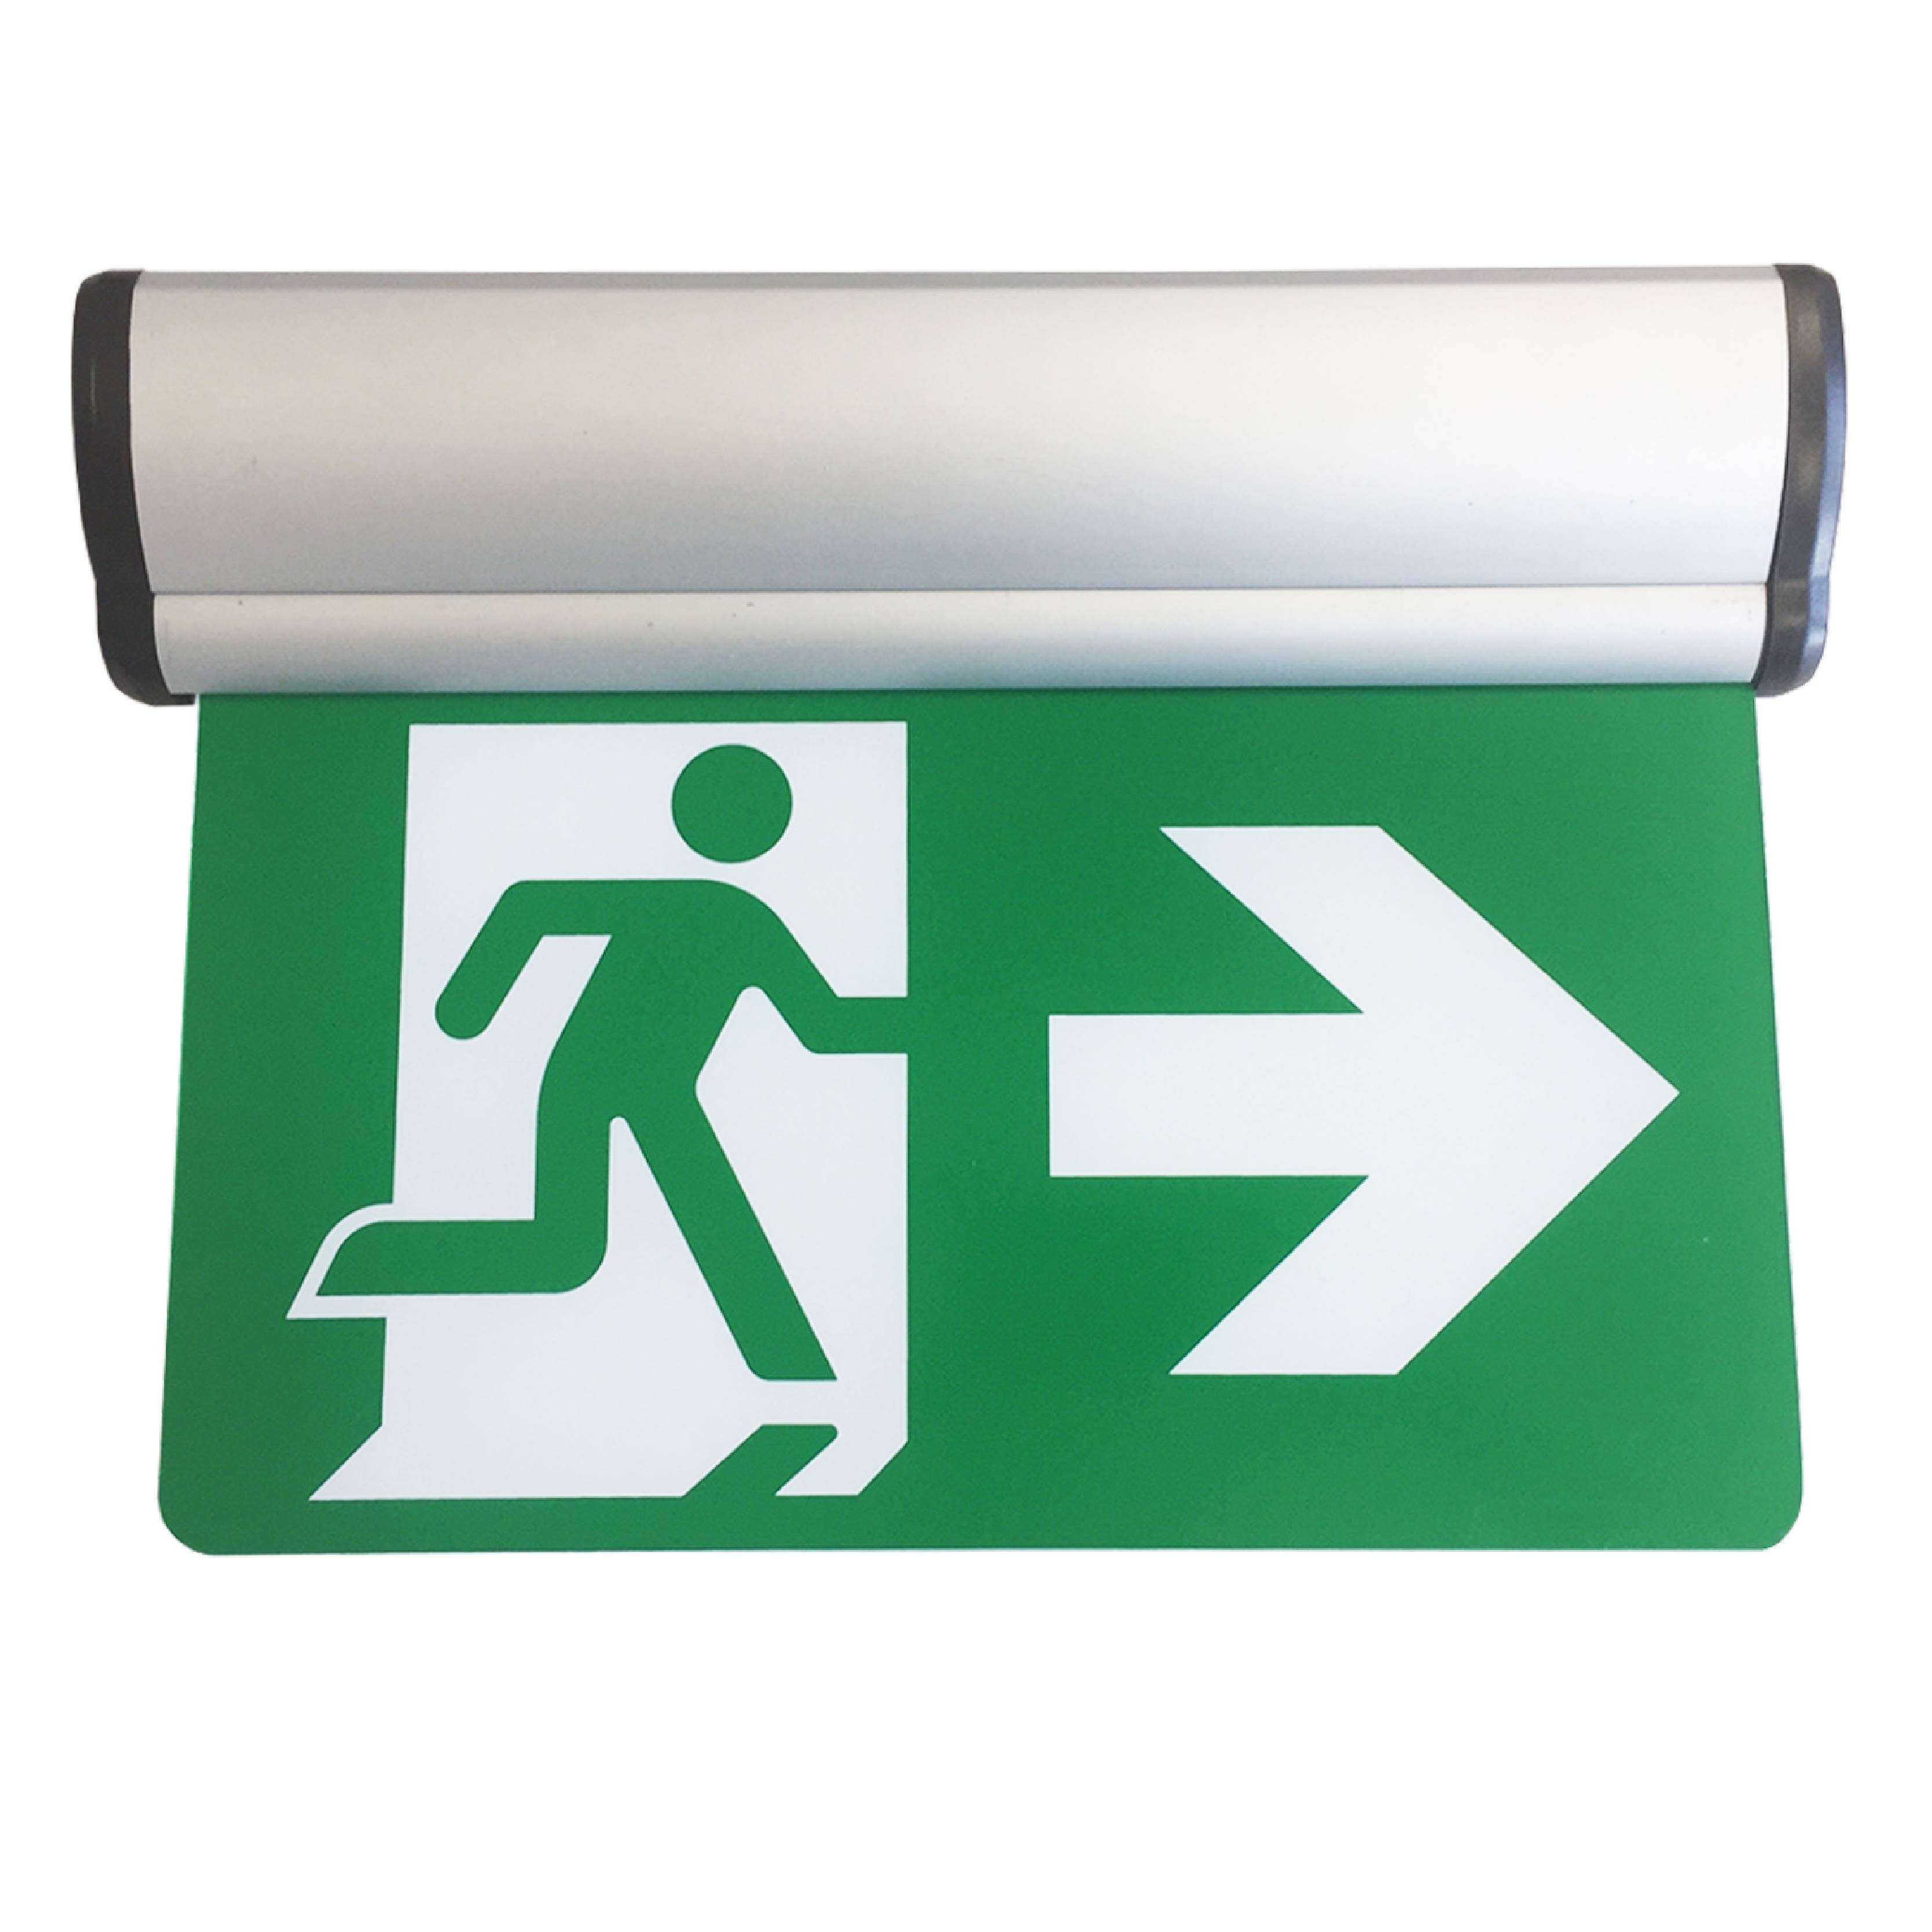 LX-741A34R/G UL Exit Sign